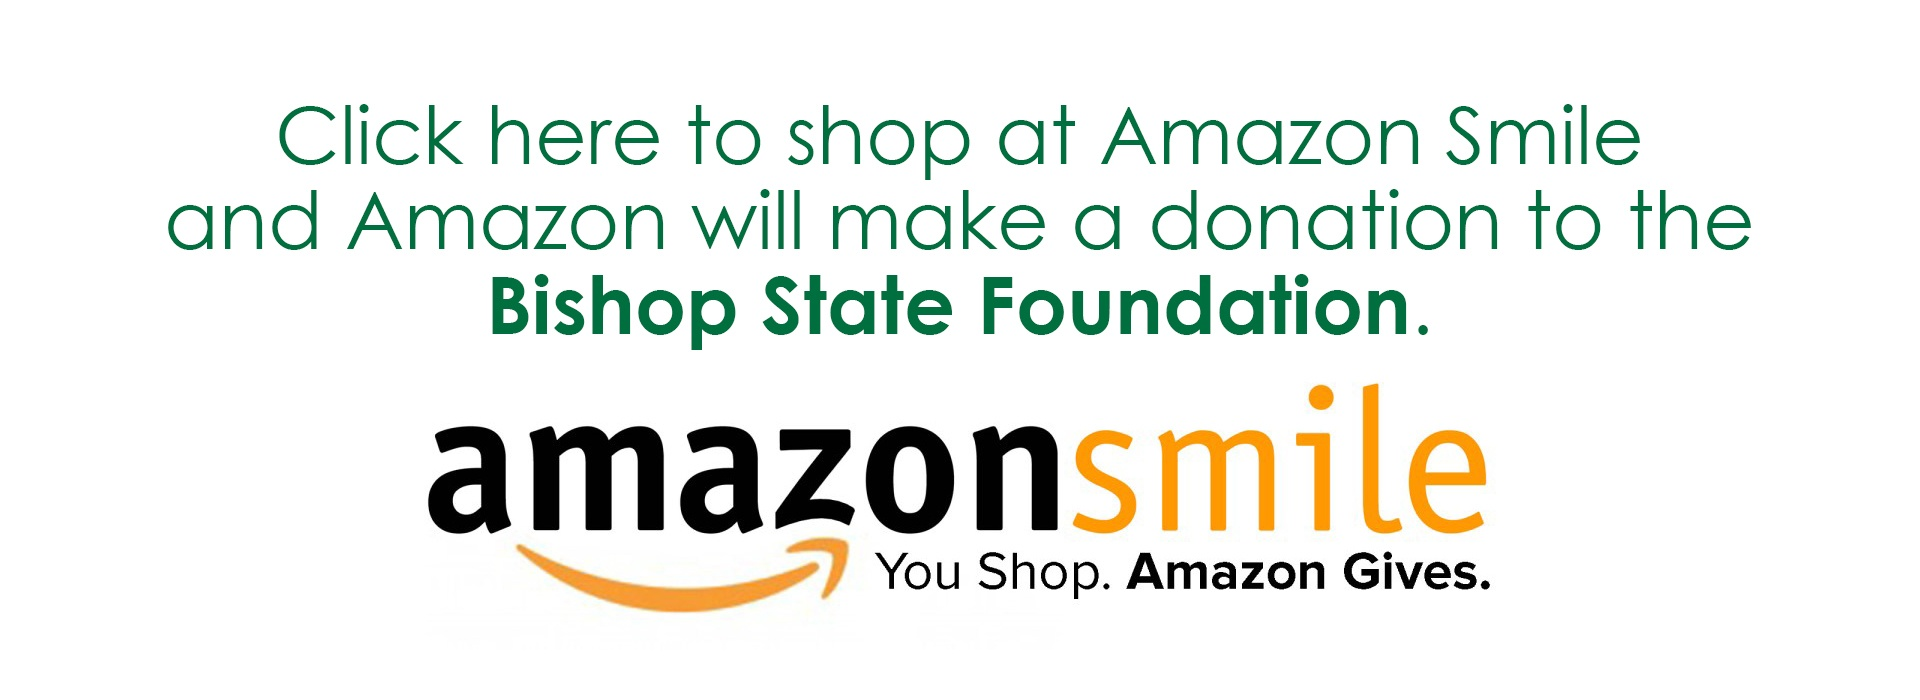 Amazon Smile Donation - Bishop State Foundation - Giving